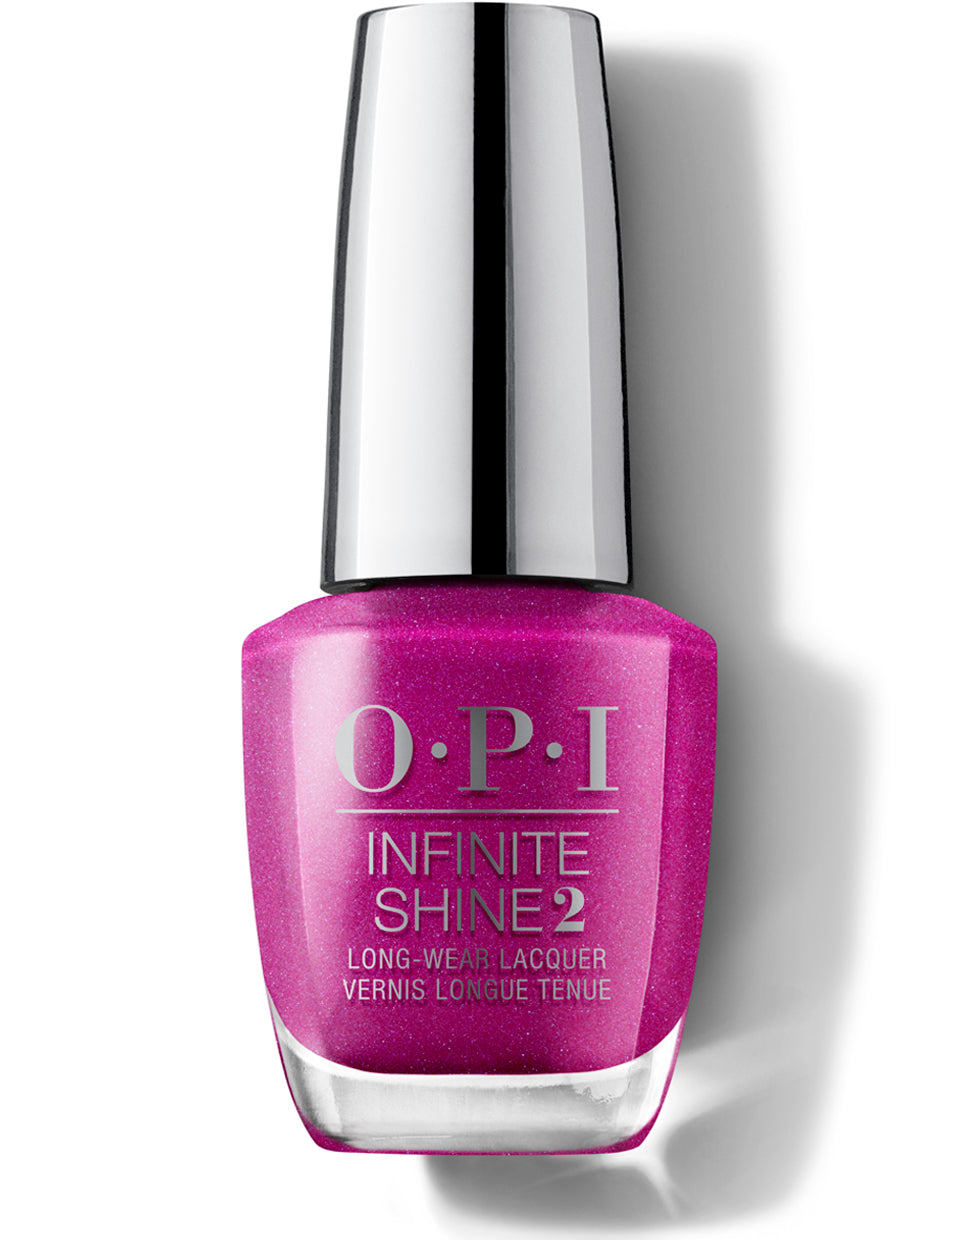 OPI Infinite Shine All Your Dreams In Vending Machines (15ml)